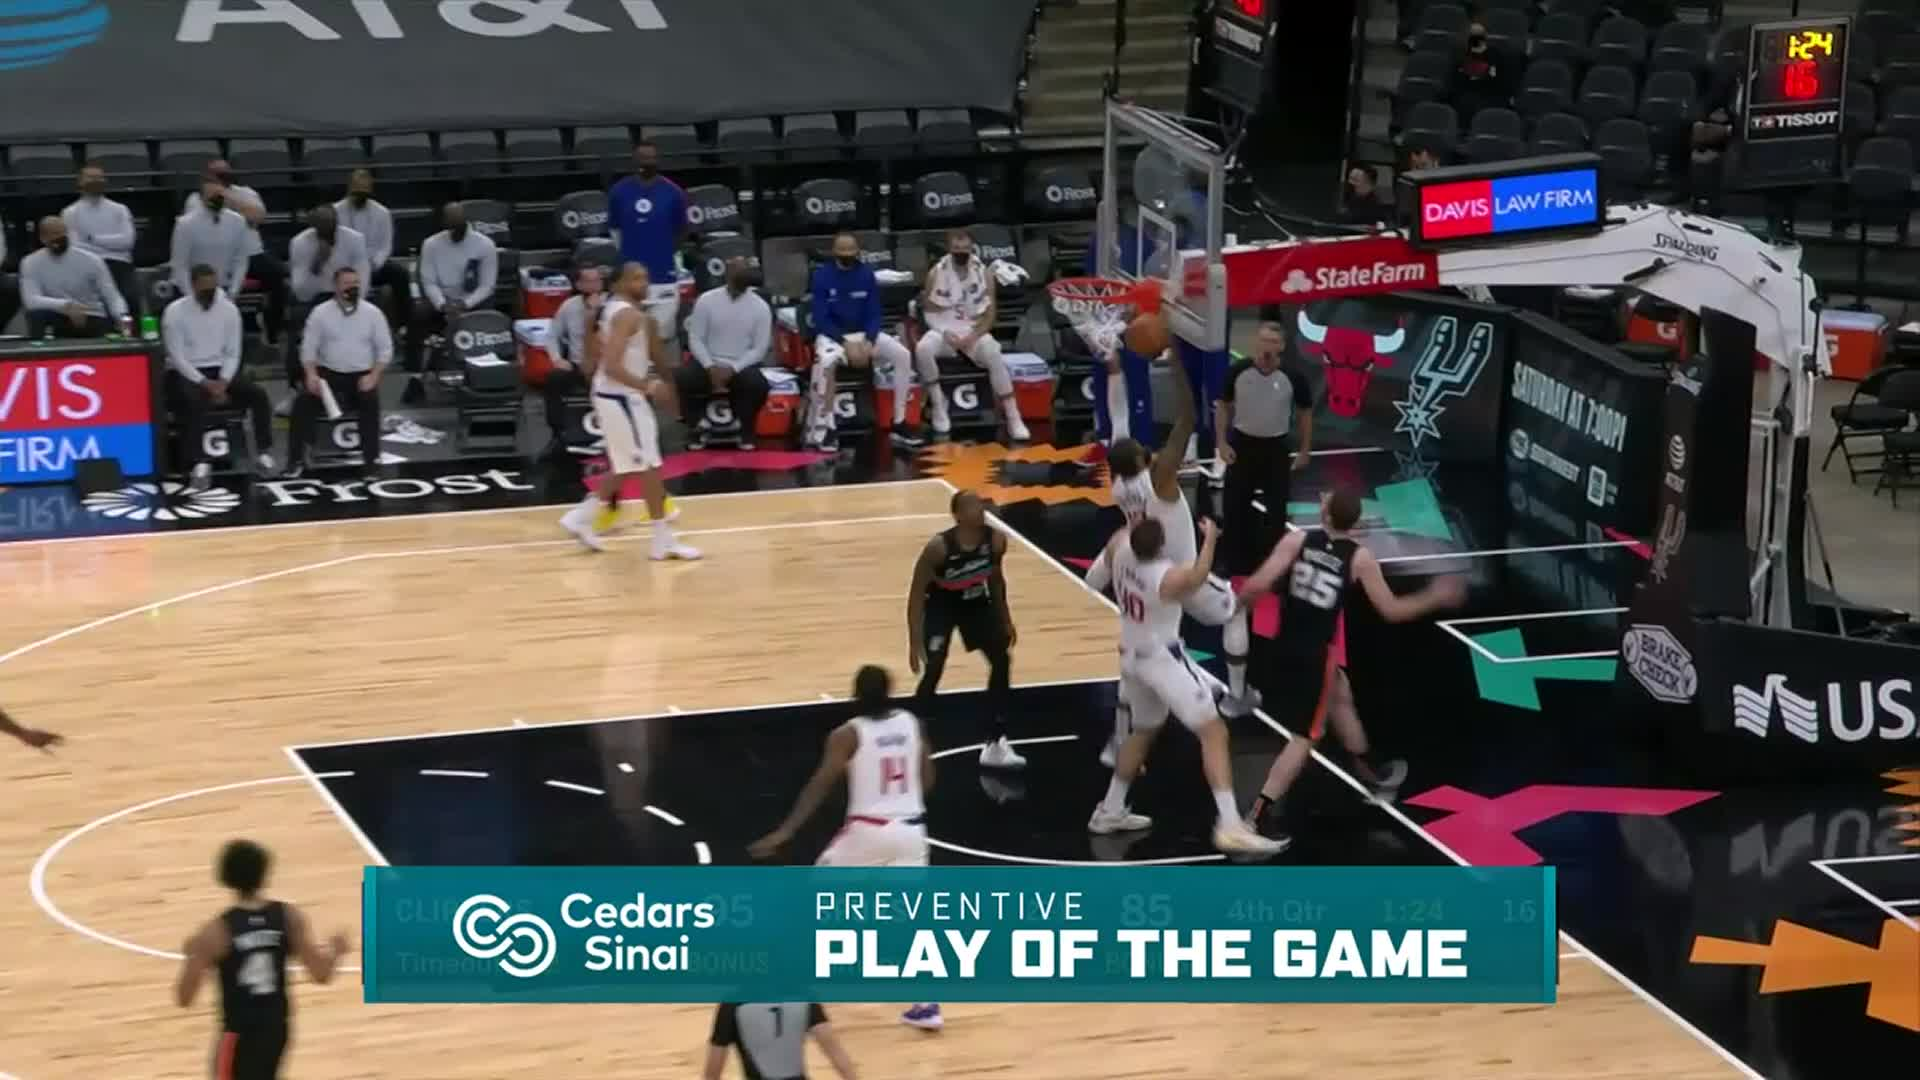 Cedars-Sinai Preventive Play of the Game | Clippers vs Spurs (3.25.21)